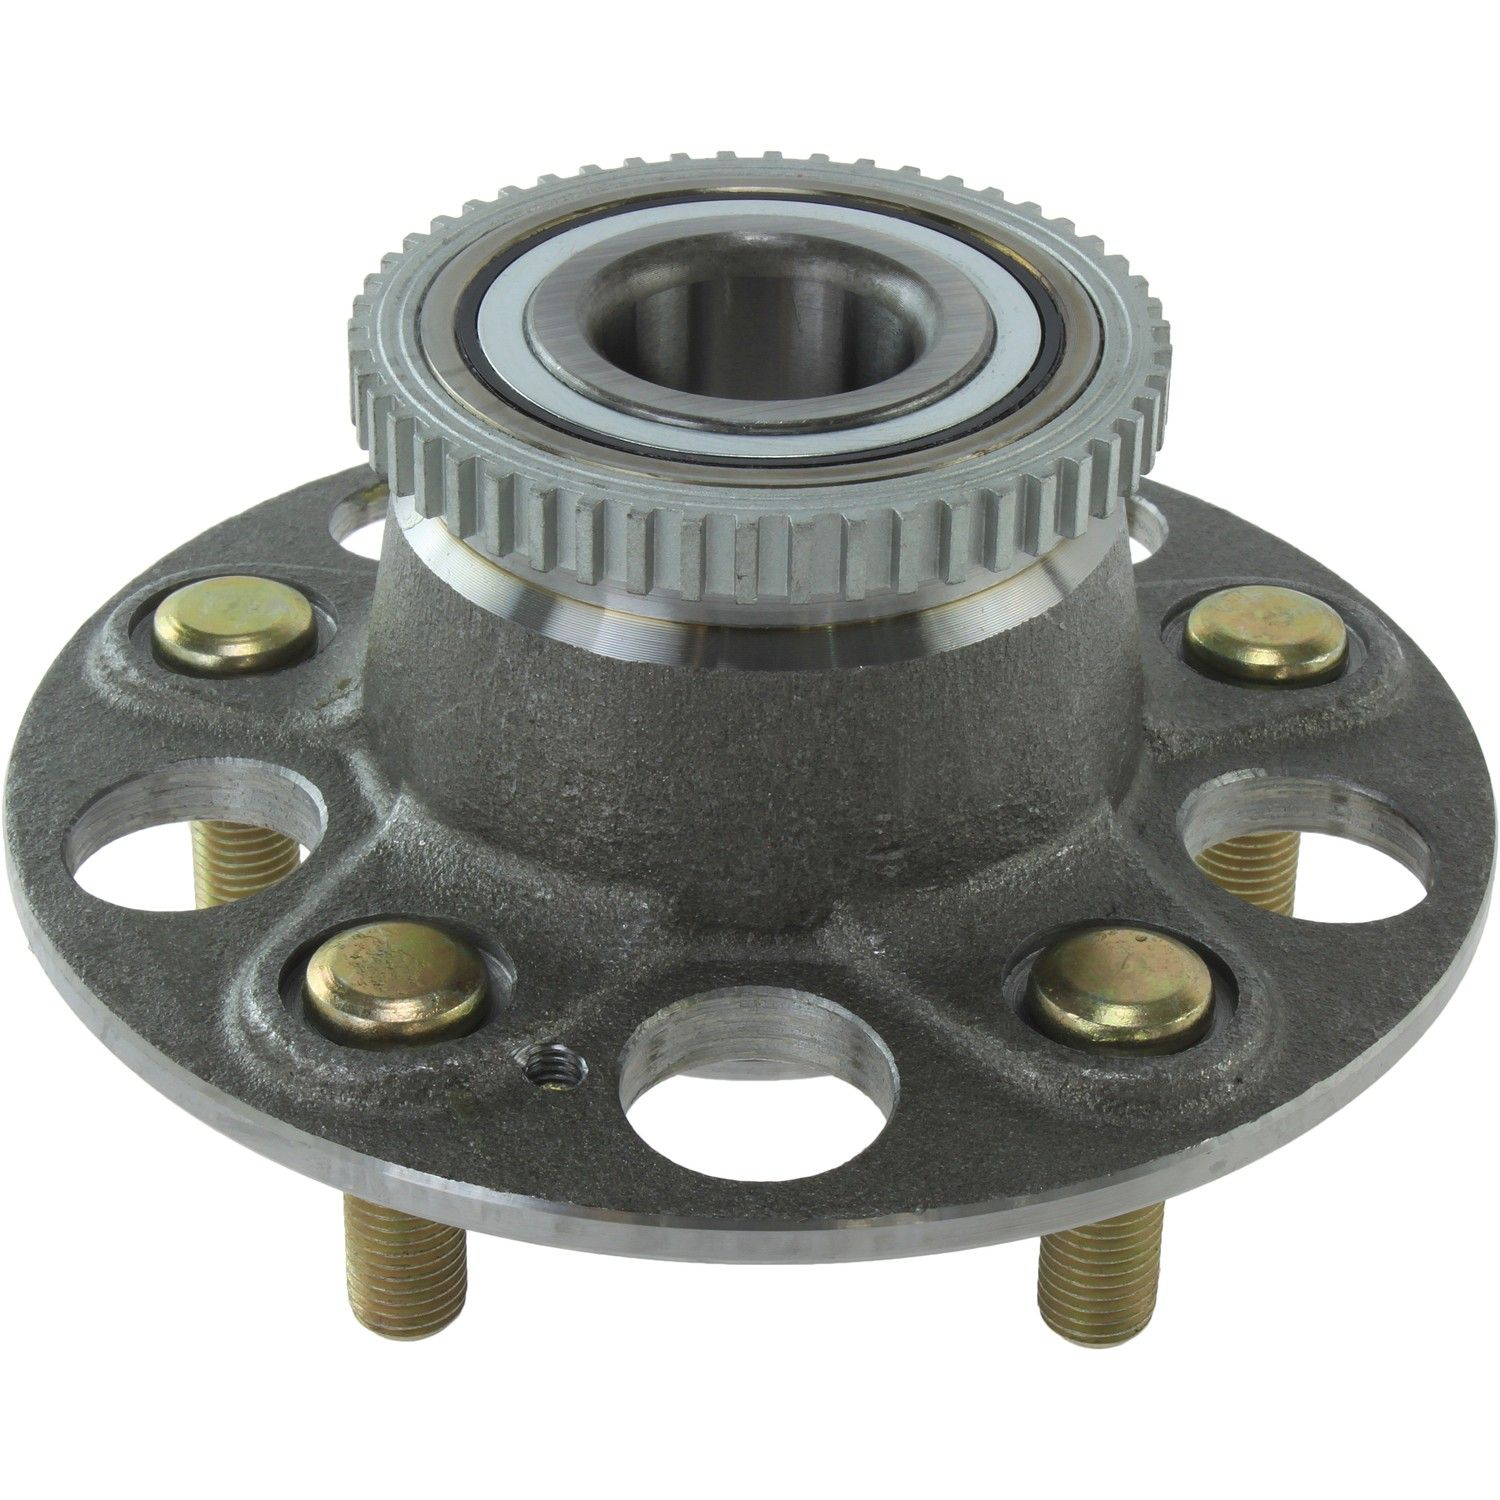 acura tl wheel bearing and hub assembly replacement beck arnley rh go parts com 1995 Acura TL Interior 1998 Acura TL